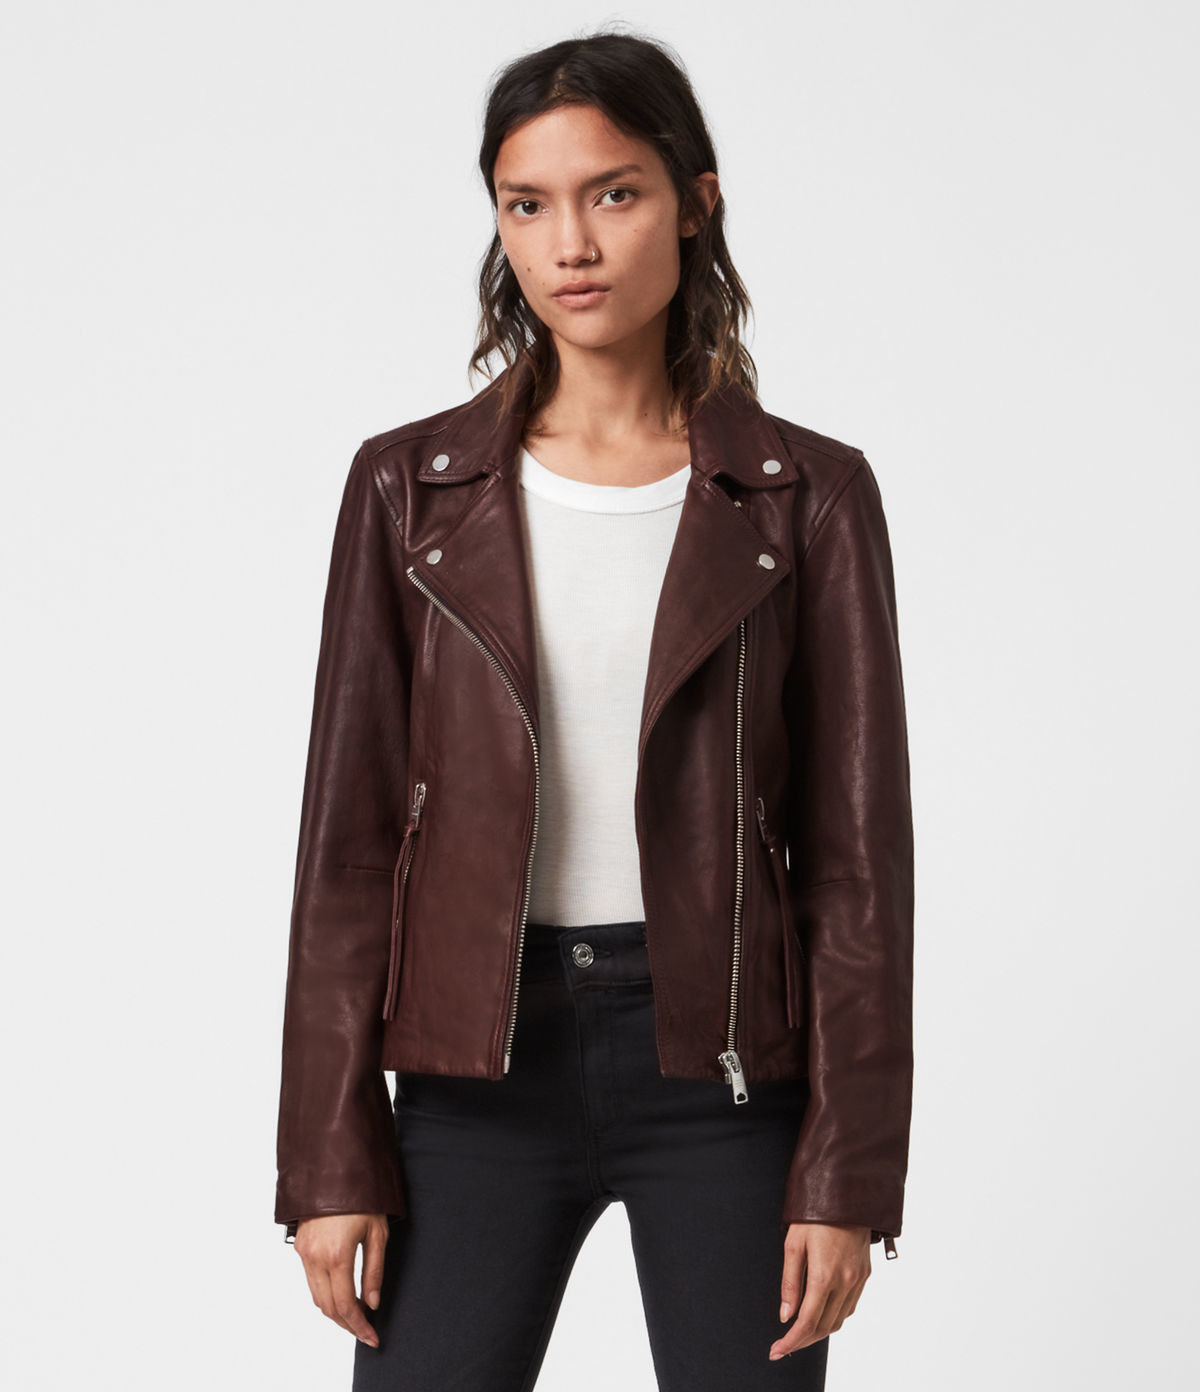 Model in brown leather jacket